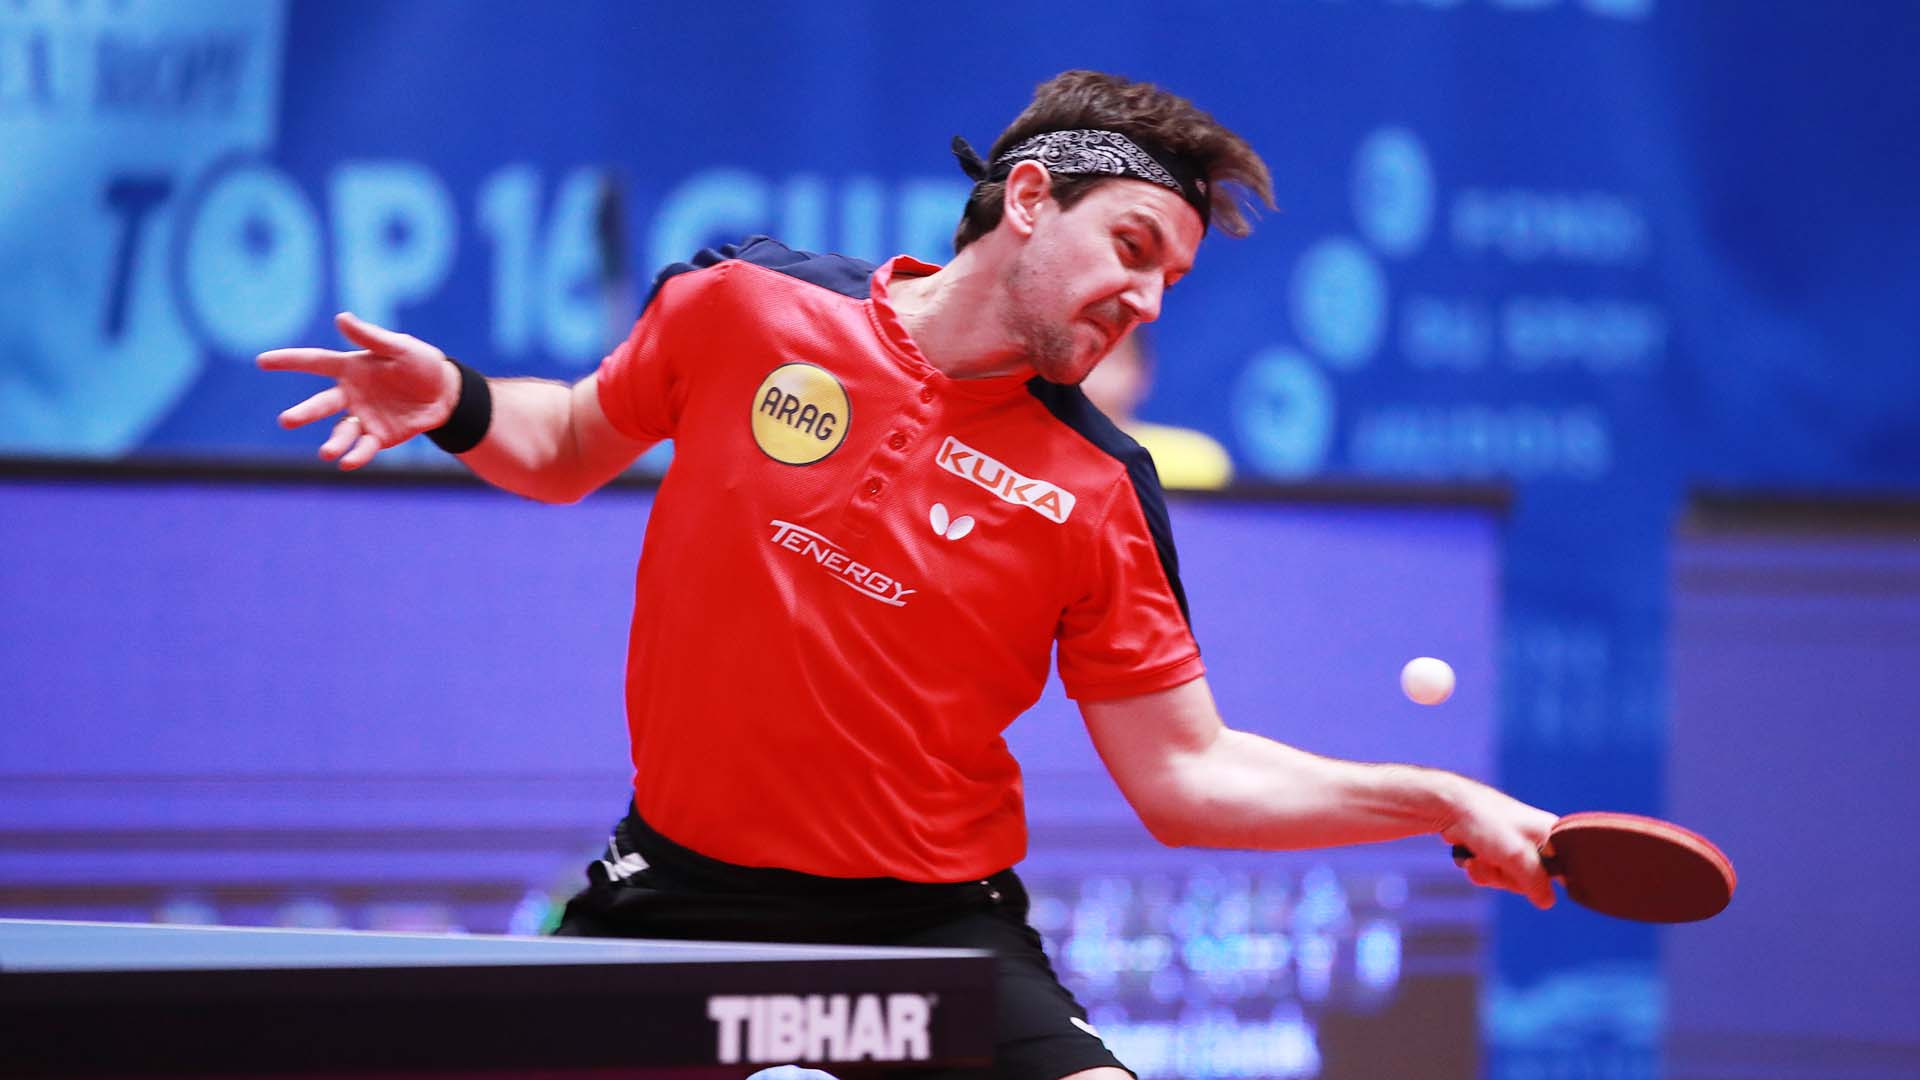 Germany's 36-year-old Timo Boll earned a sixth ITTF Europe Top 16 victory in Montreux ©Getty Images